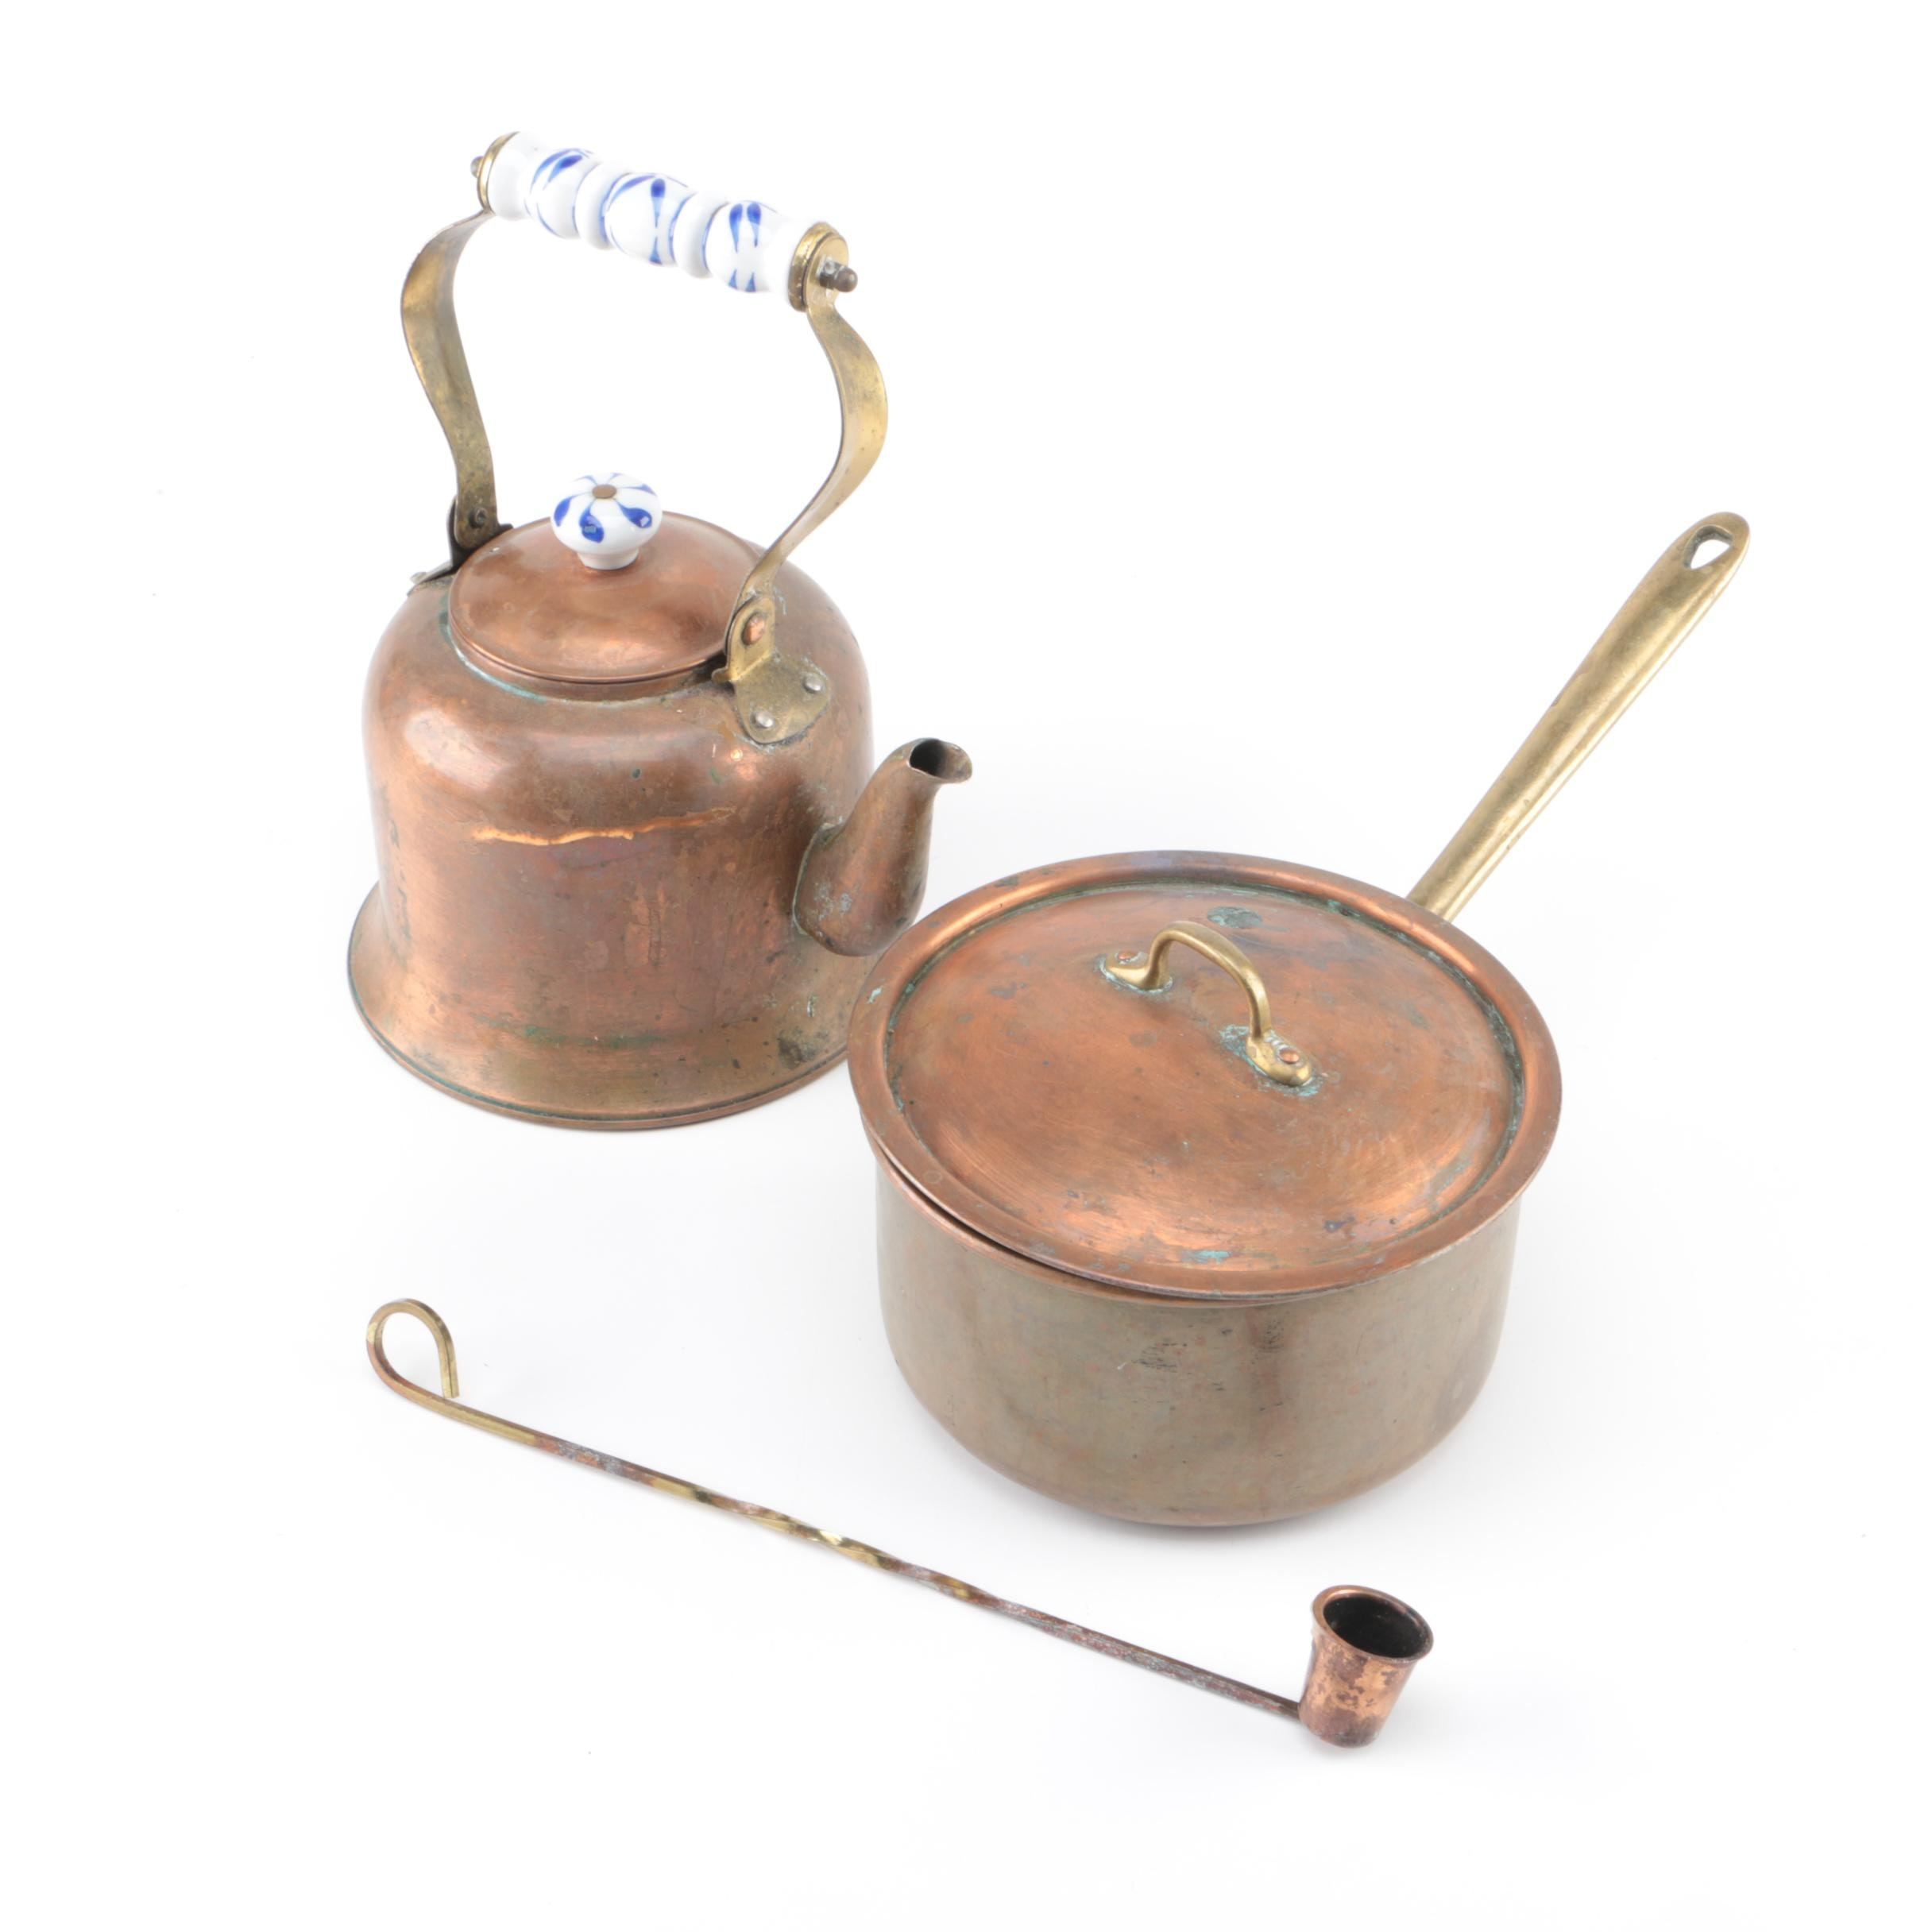 Vintage Copper Kitchenwares